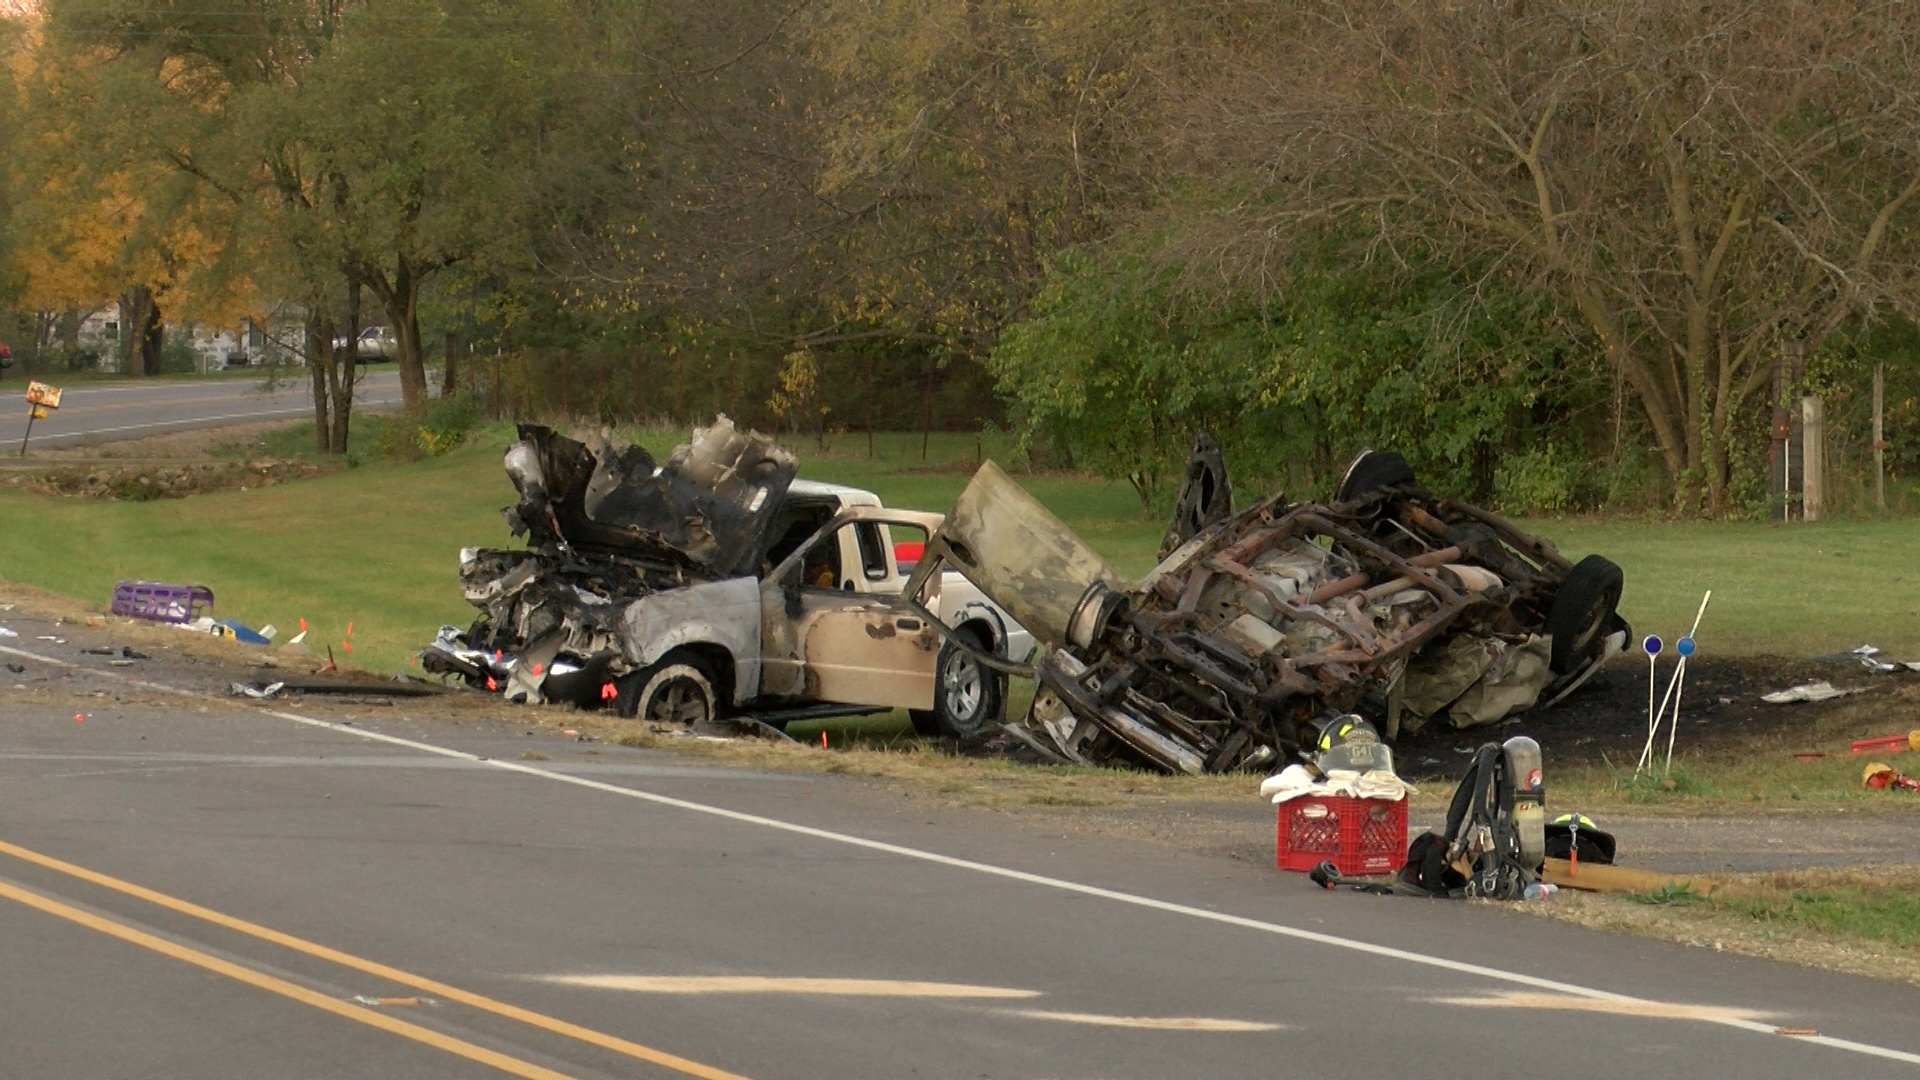 People Killed In Manito Road Crash Identified